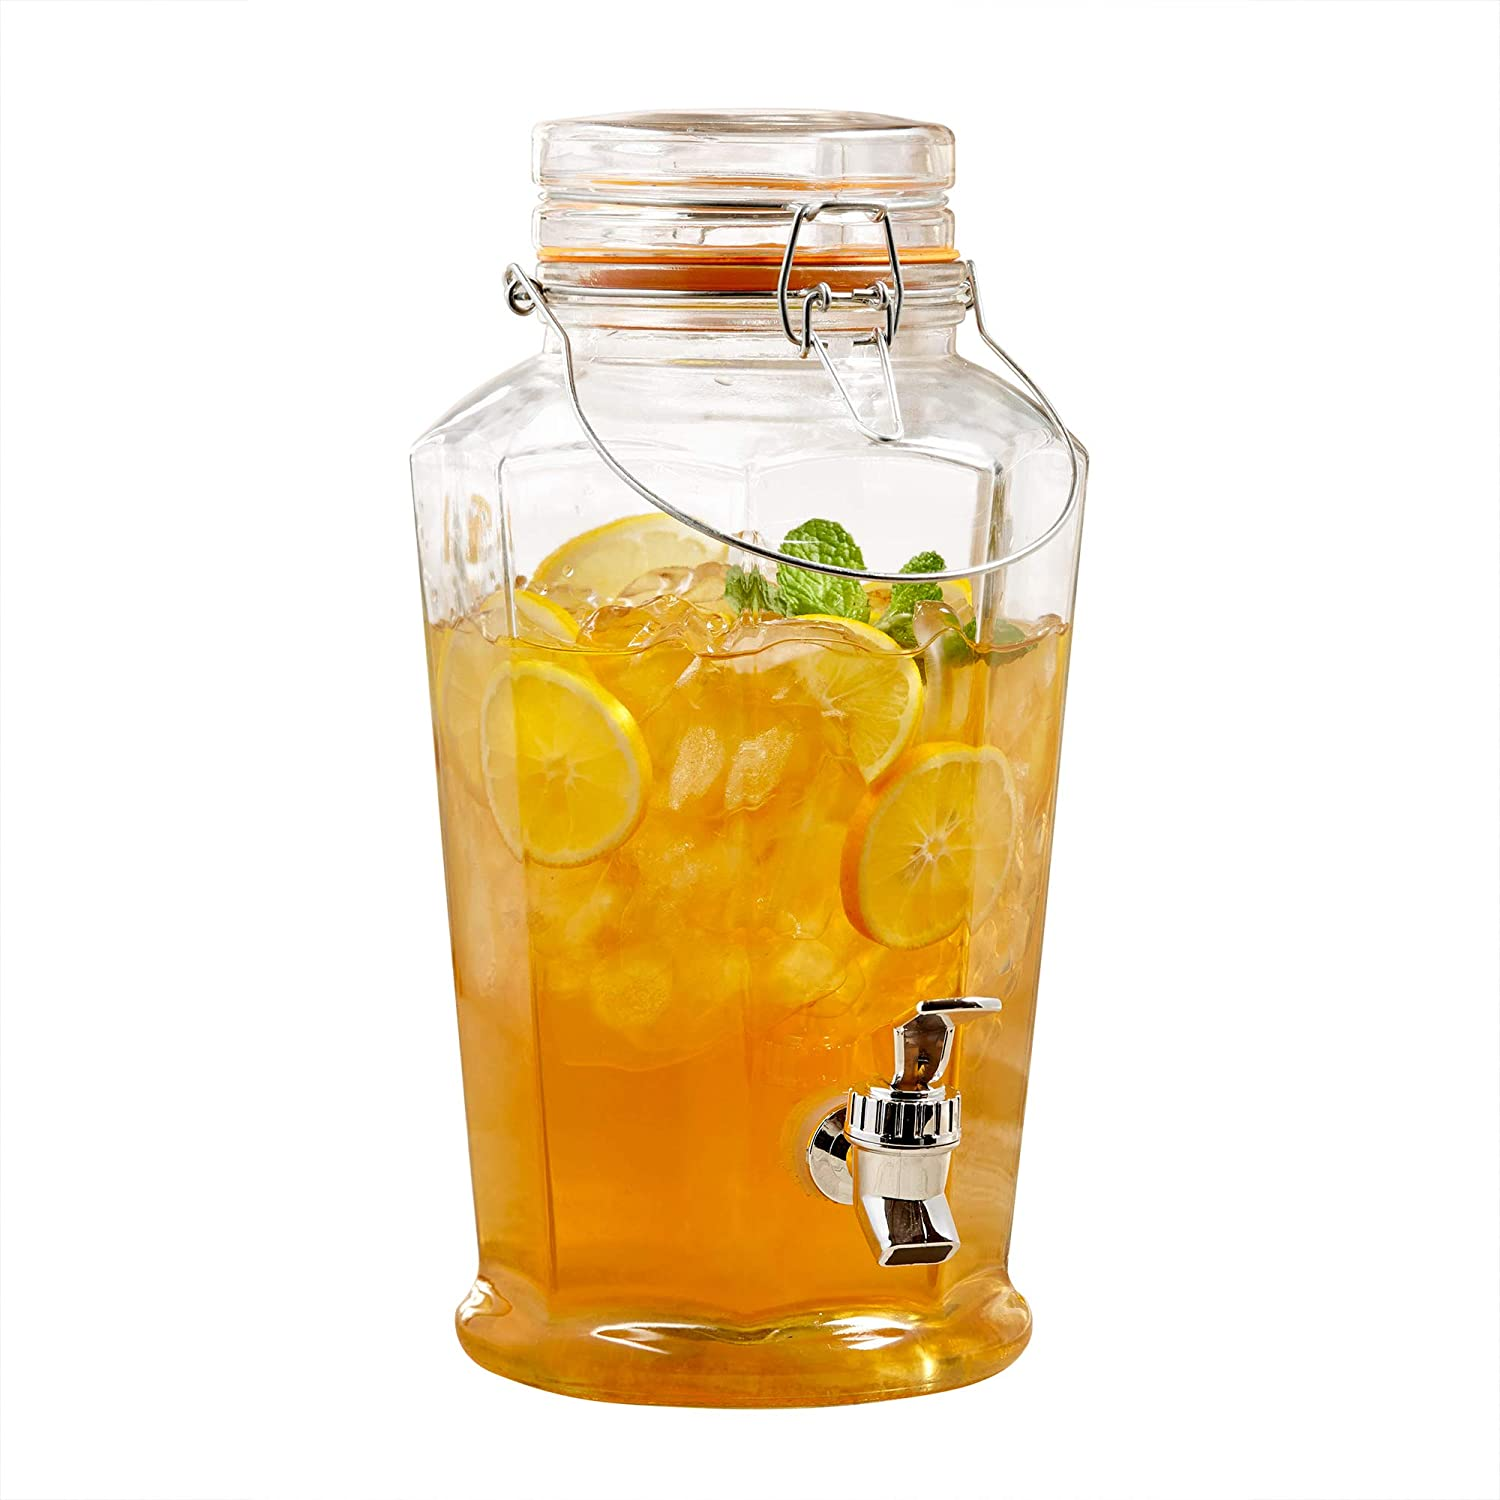 Style Setter 210222-GB Auburn Beverage Dispenser with Metal Handle, Clear